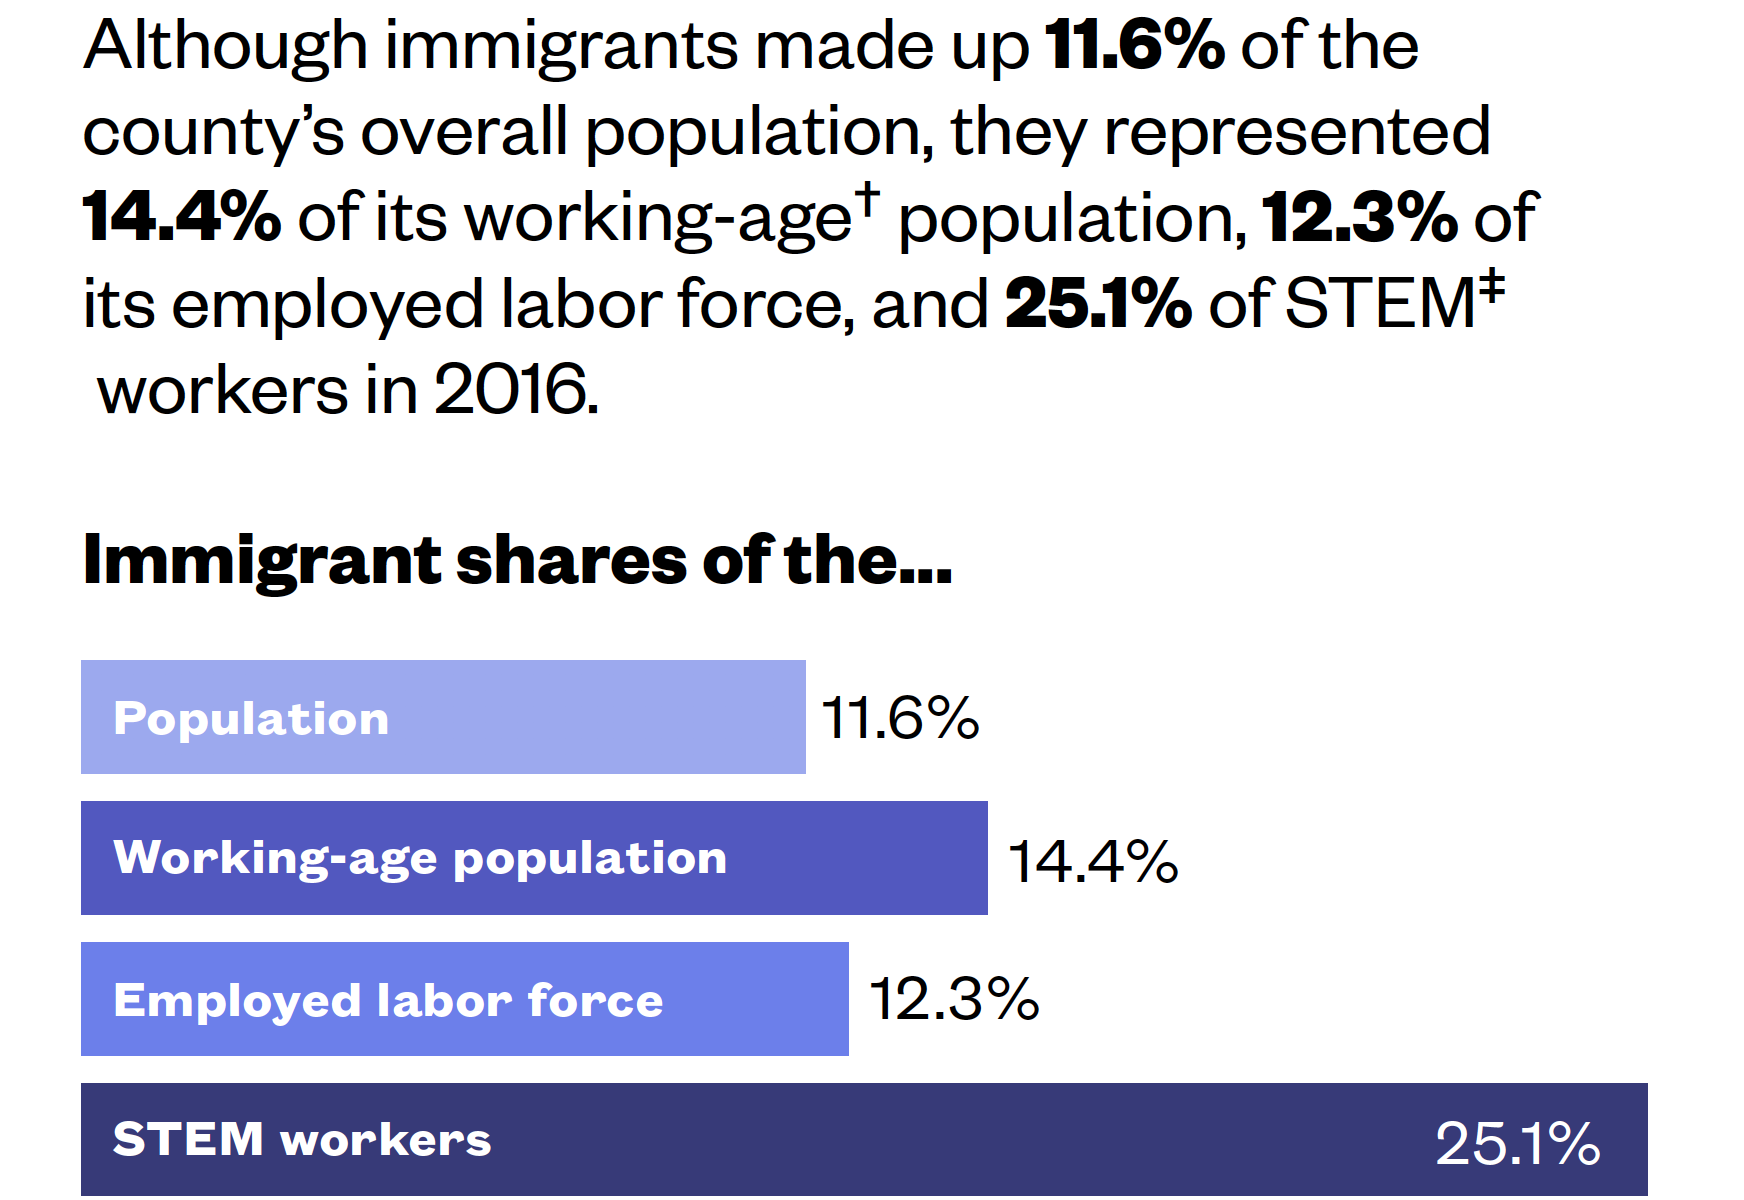 New study highlights immigrant contribution to Champaign's STEM workforce 5 New study highlights immigrant contribution to Champaign's STEM workforce